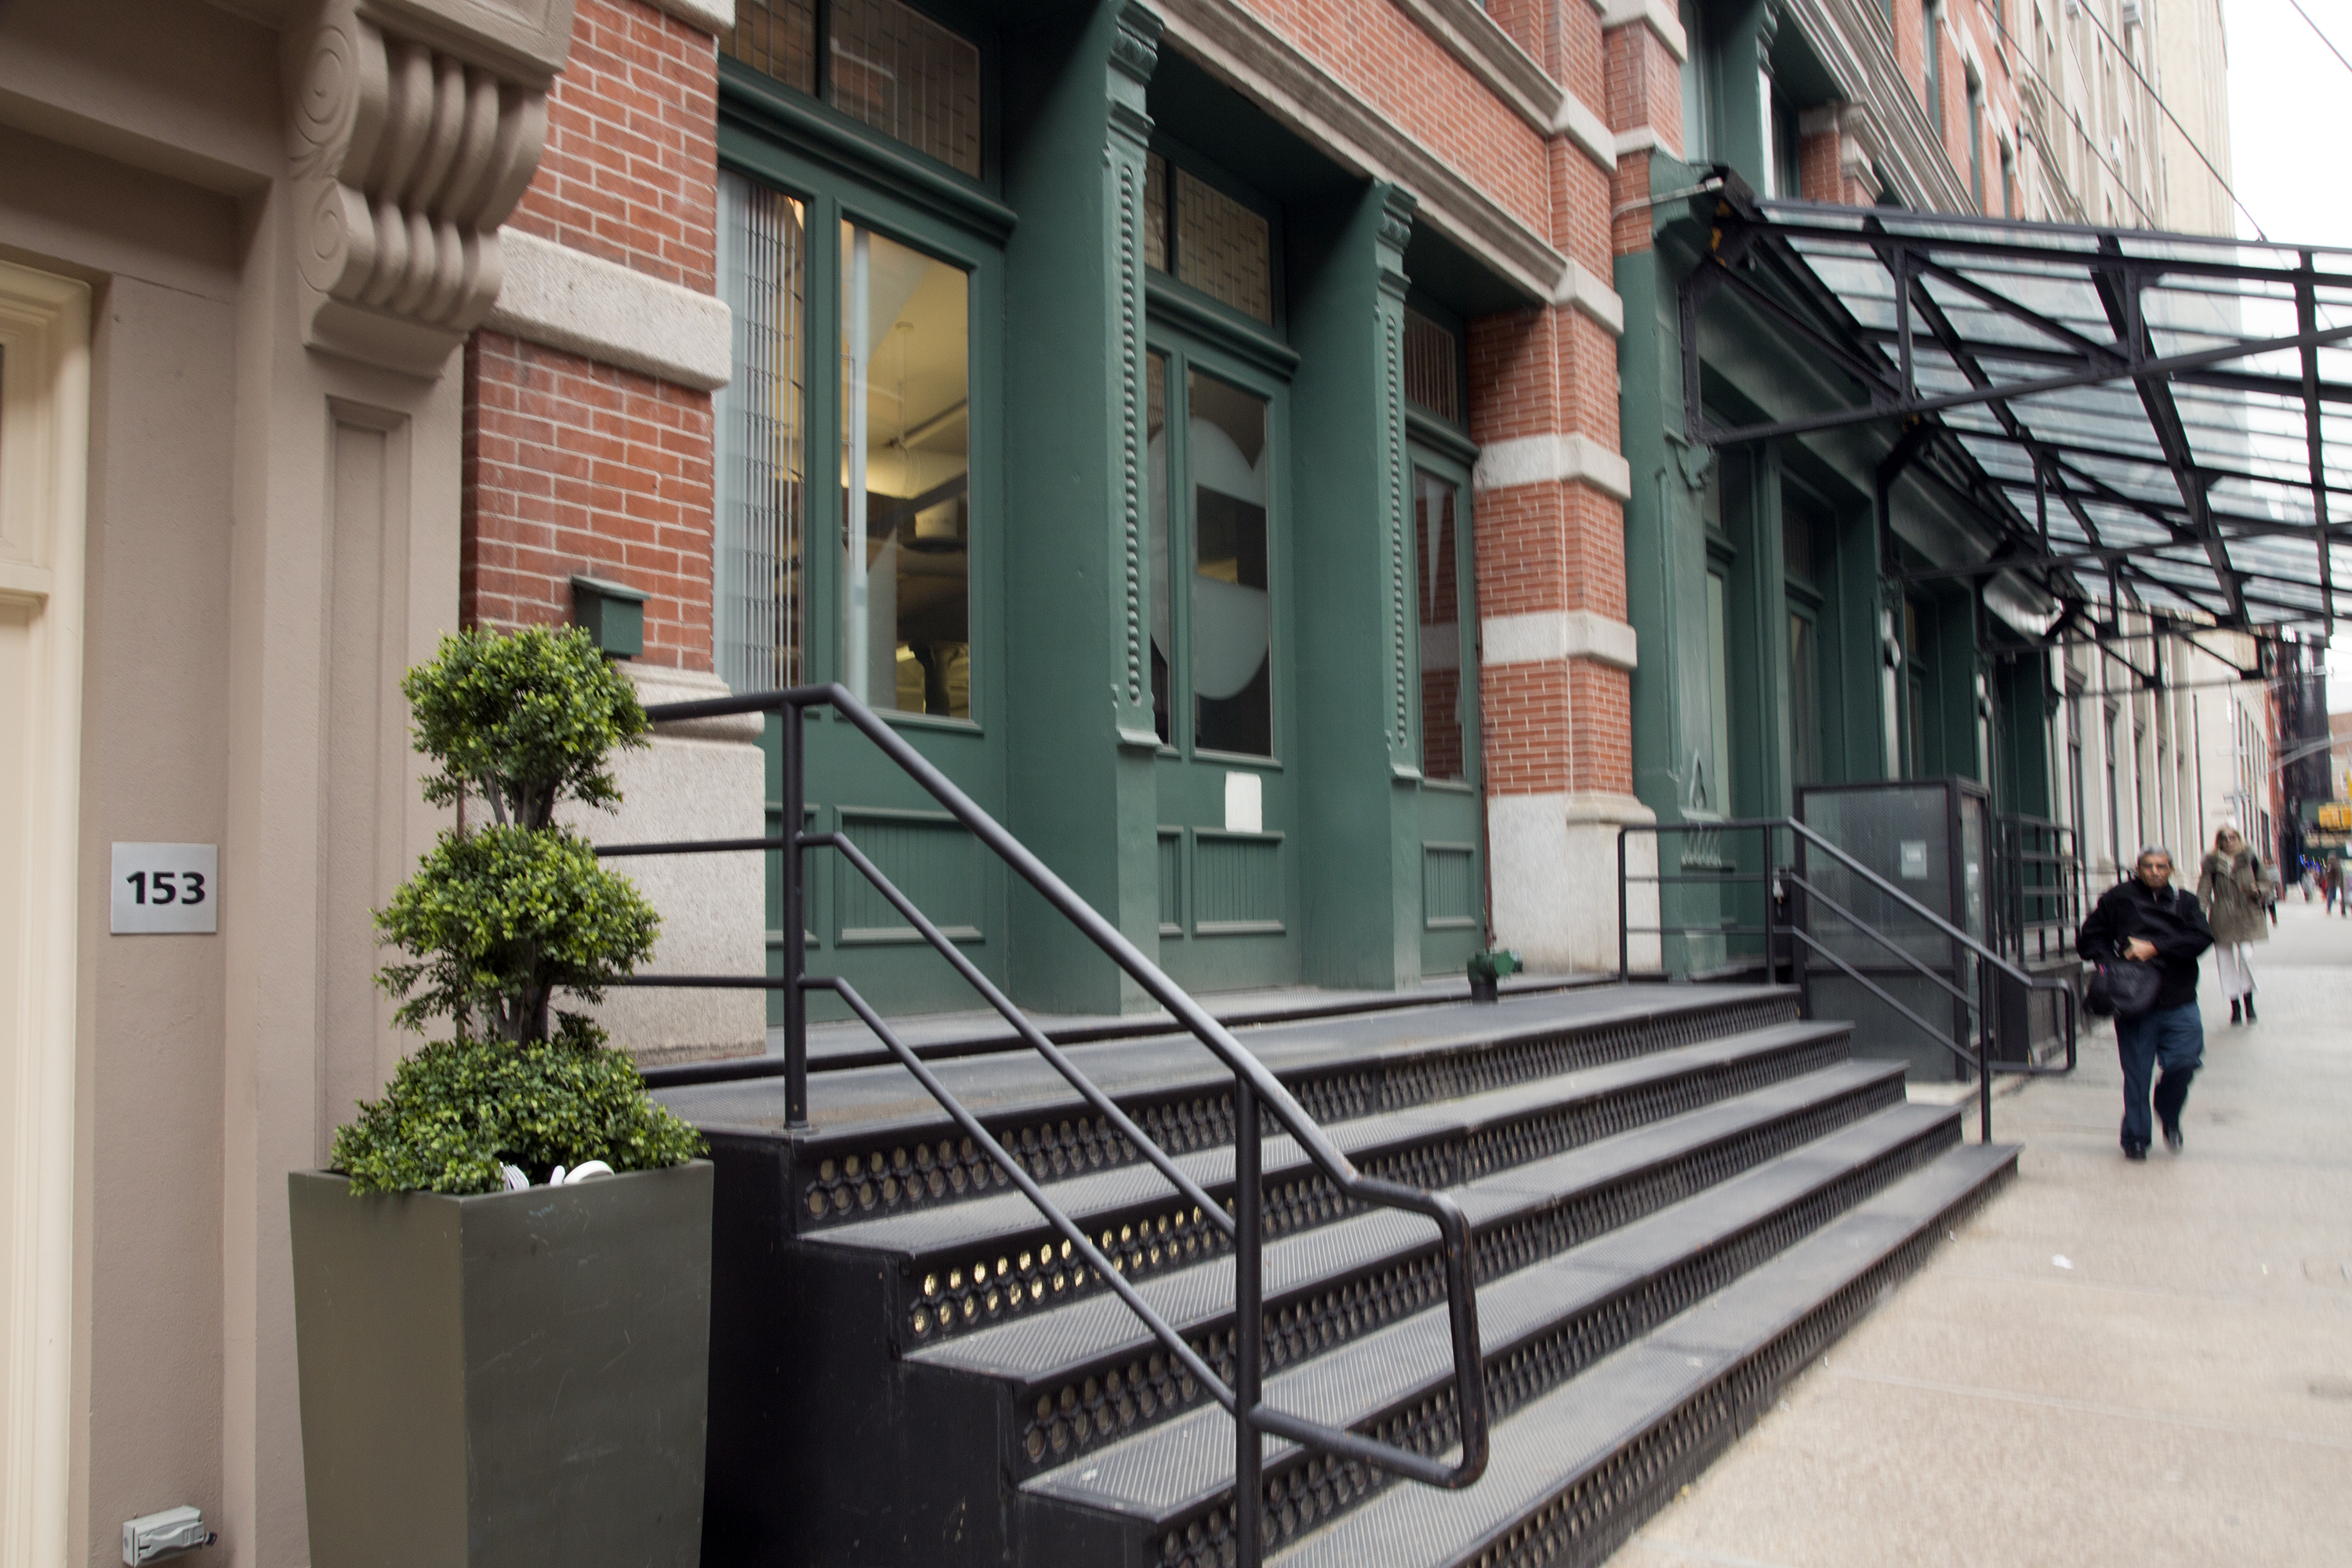 The steps in front of the Sugar Loaf Building, the warehouse-turned-luxury condo space that has housed Taylor Swift and several other recognizable names.